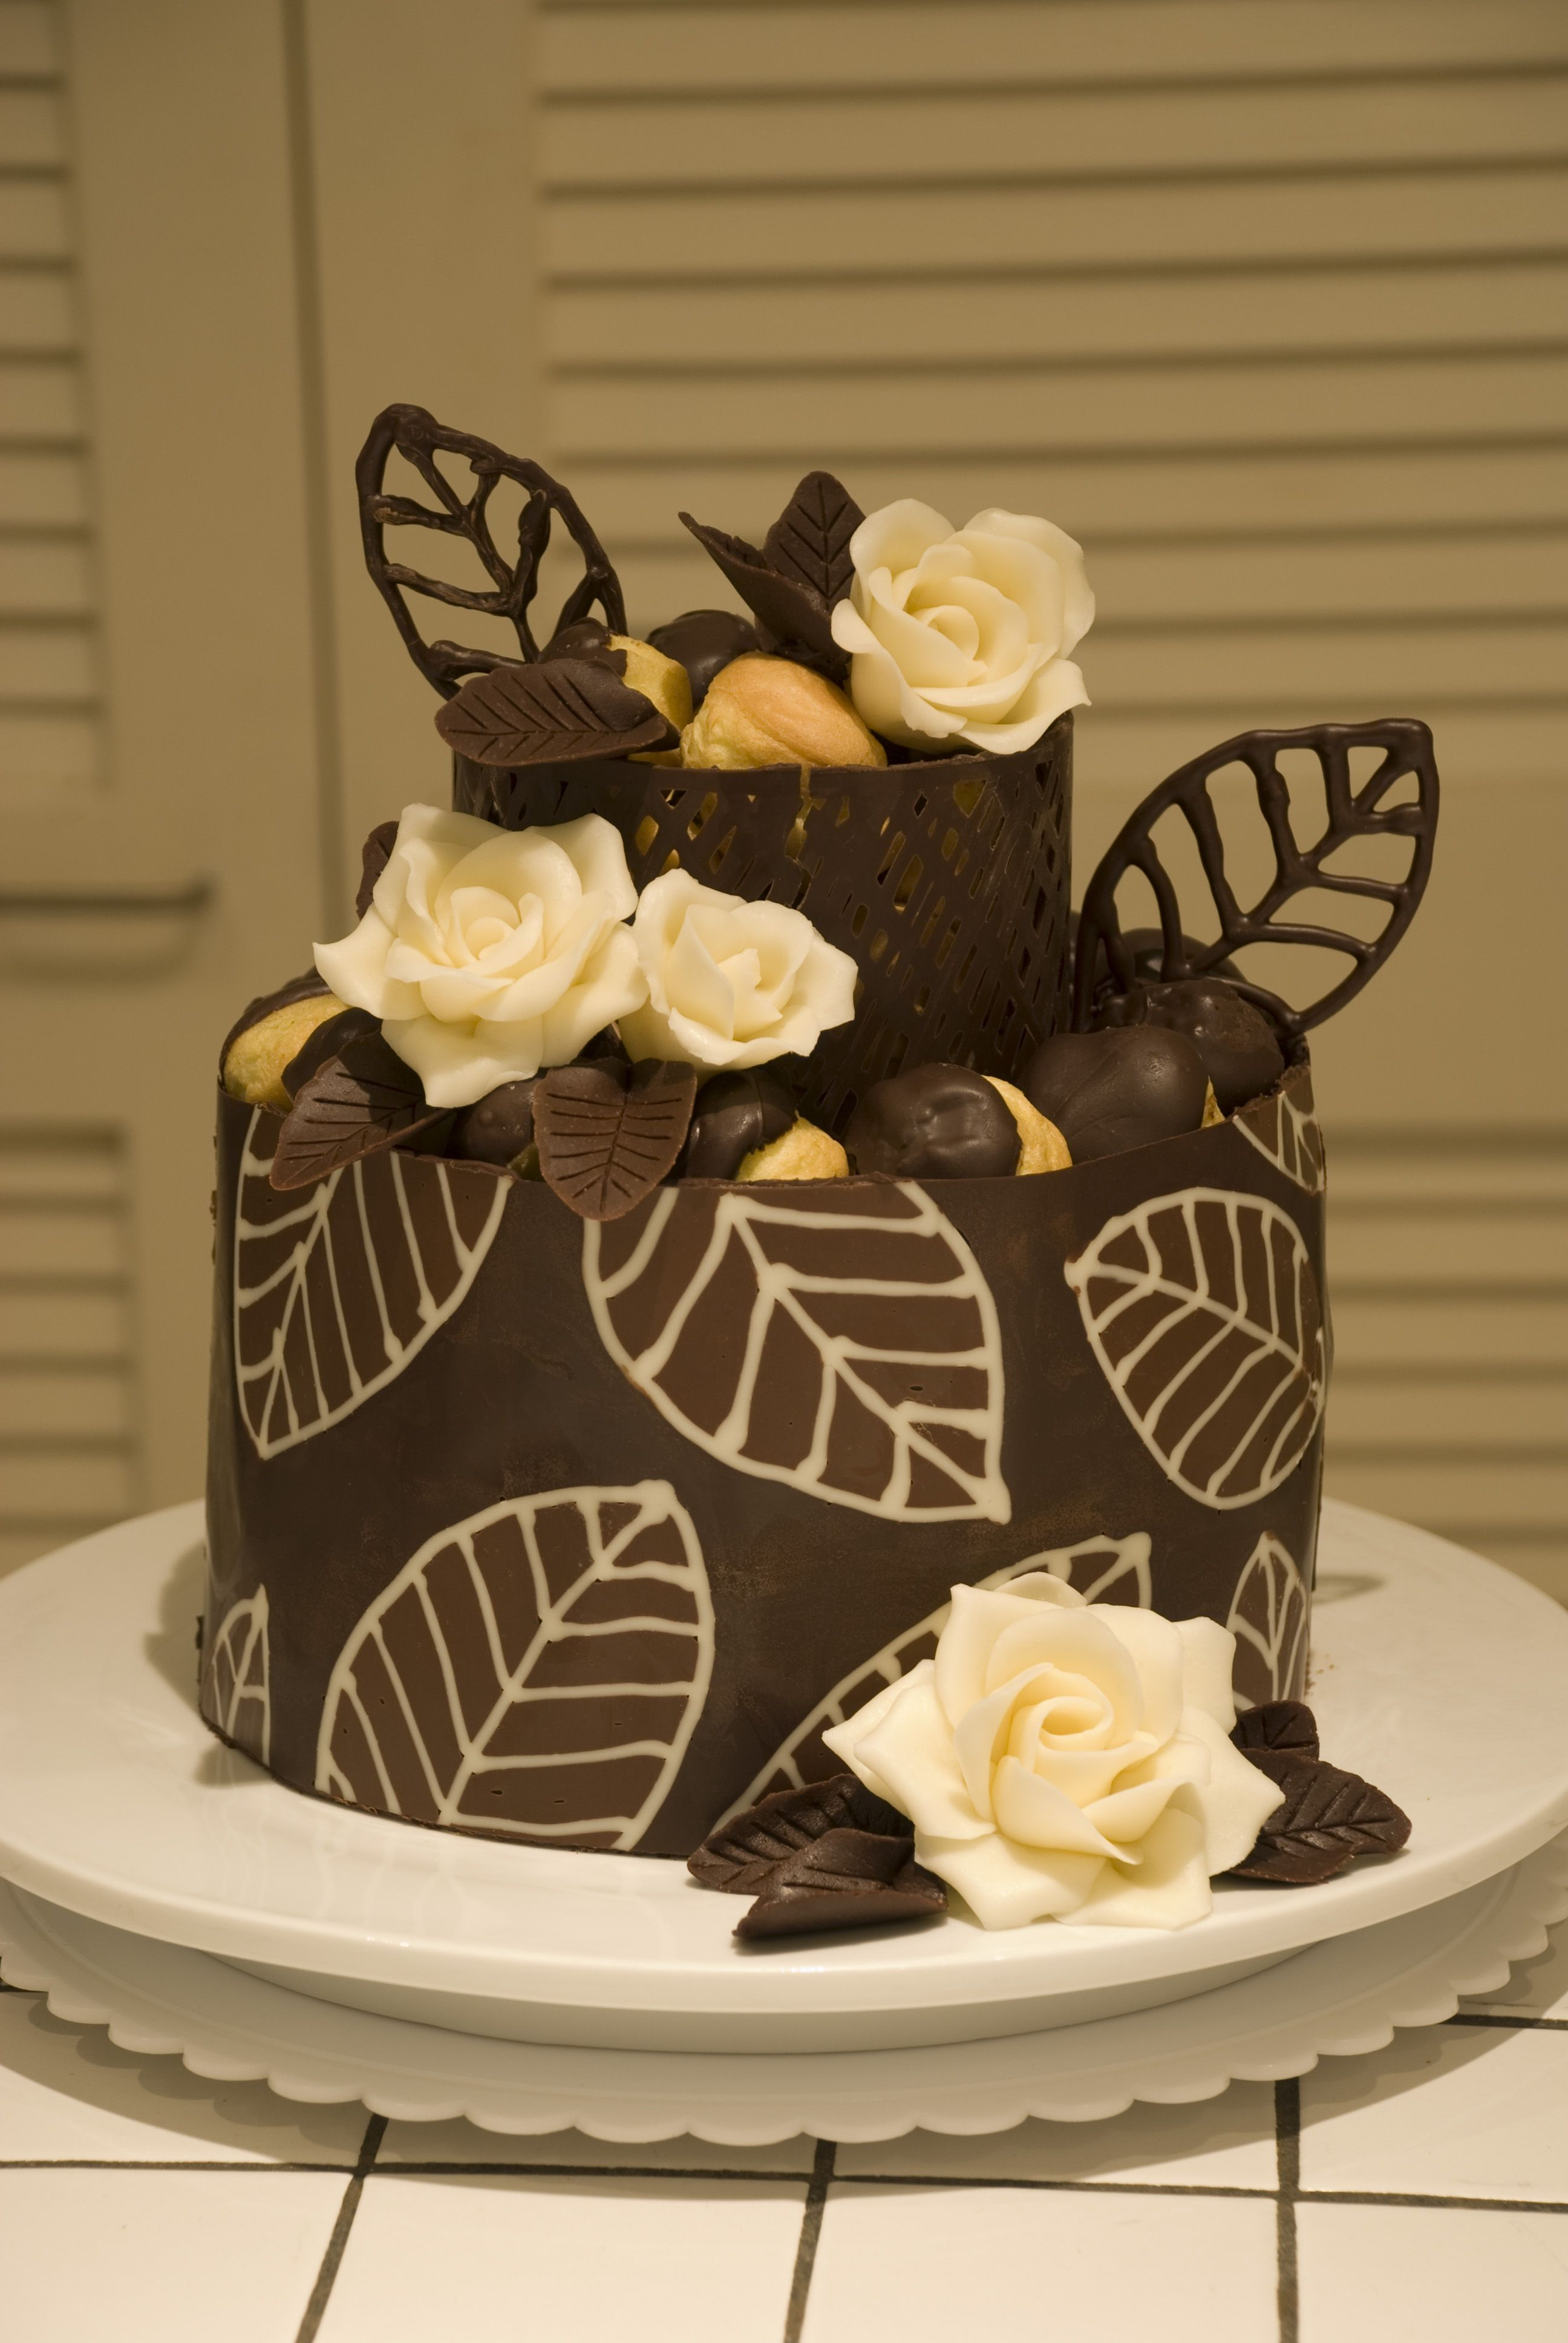 chocolate collar cake | Mother's Day Cake | Food art & inspiration ...